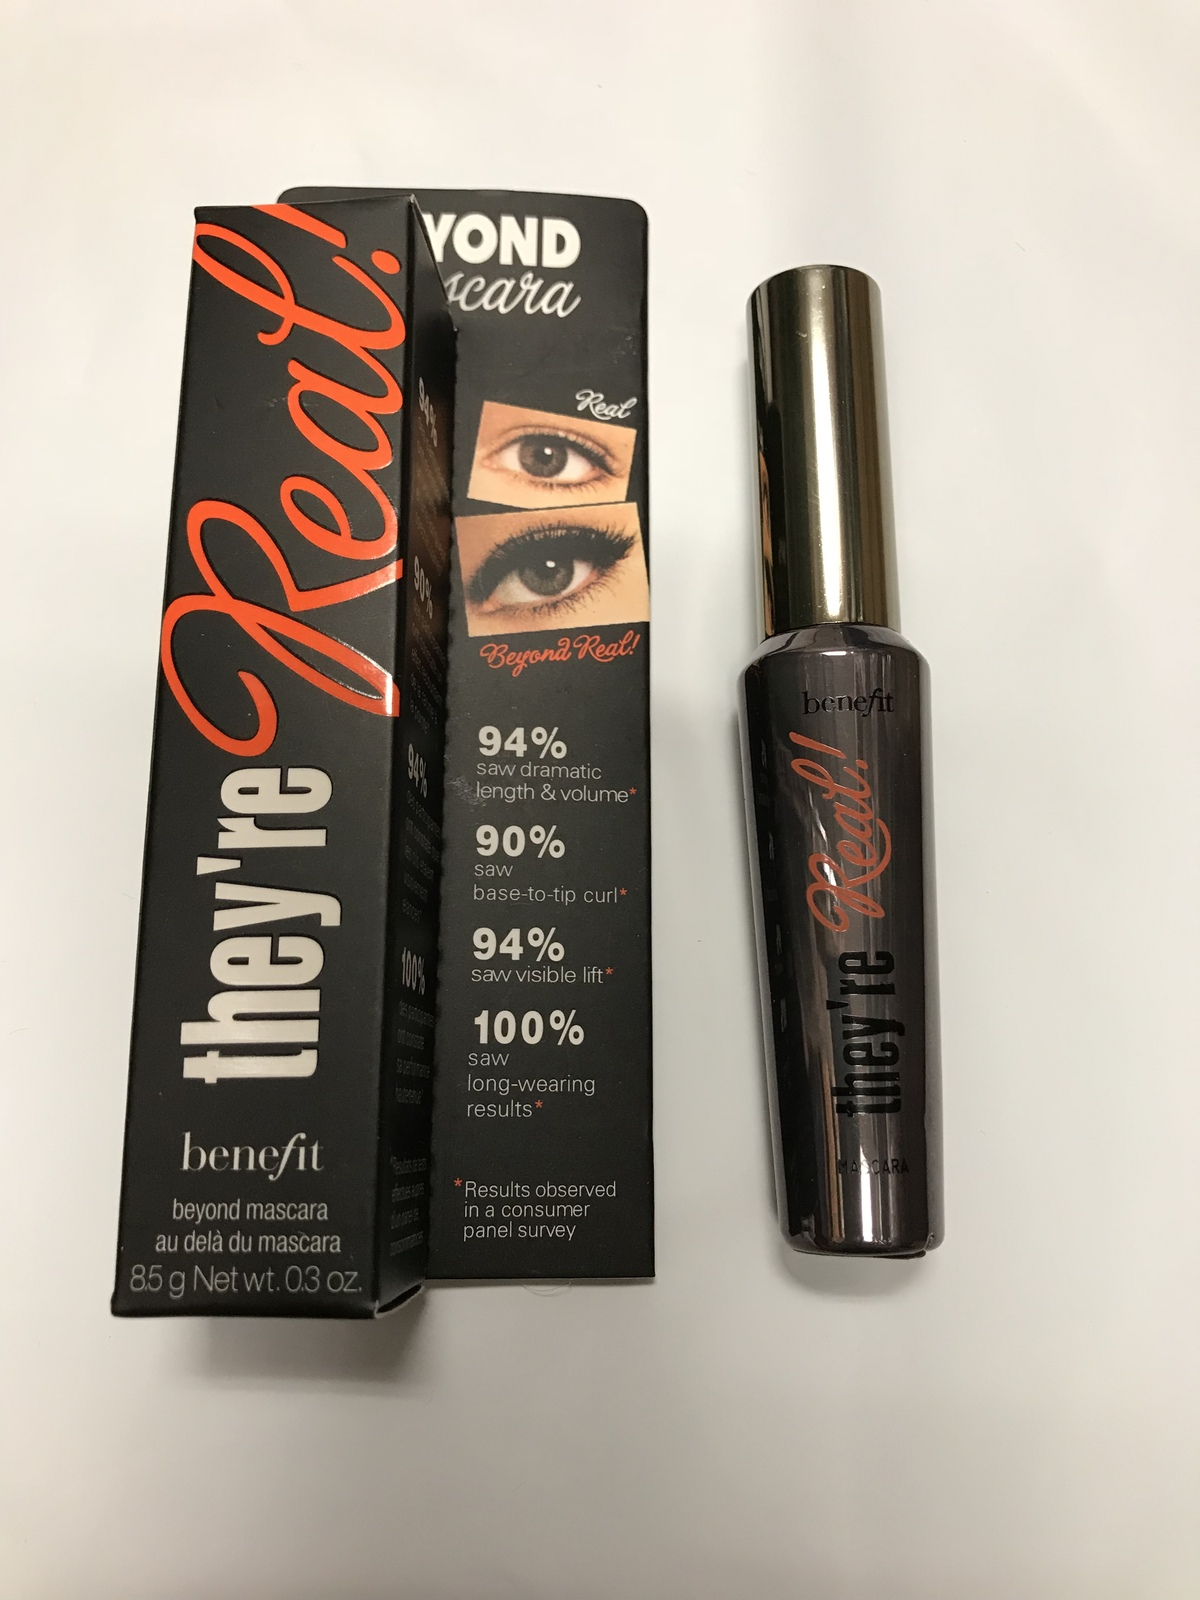 BENEFIT- THEY'RE REAL BEYOND MASCARA IN BLACK 0.3 oz/85g